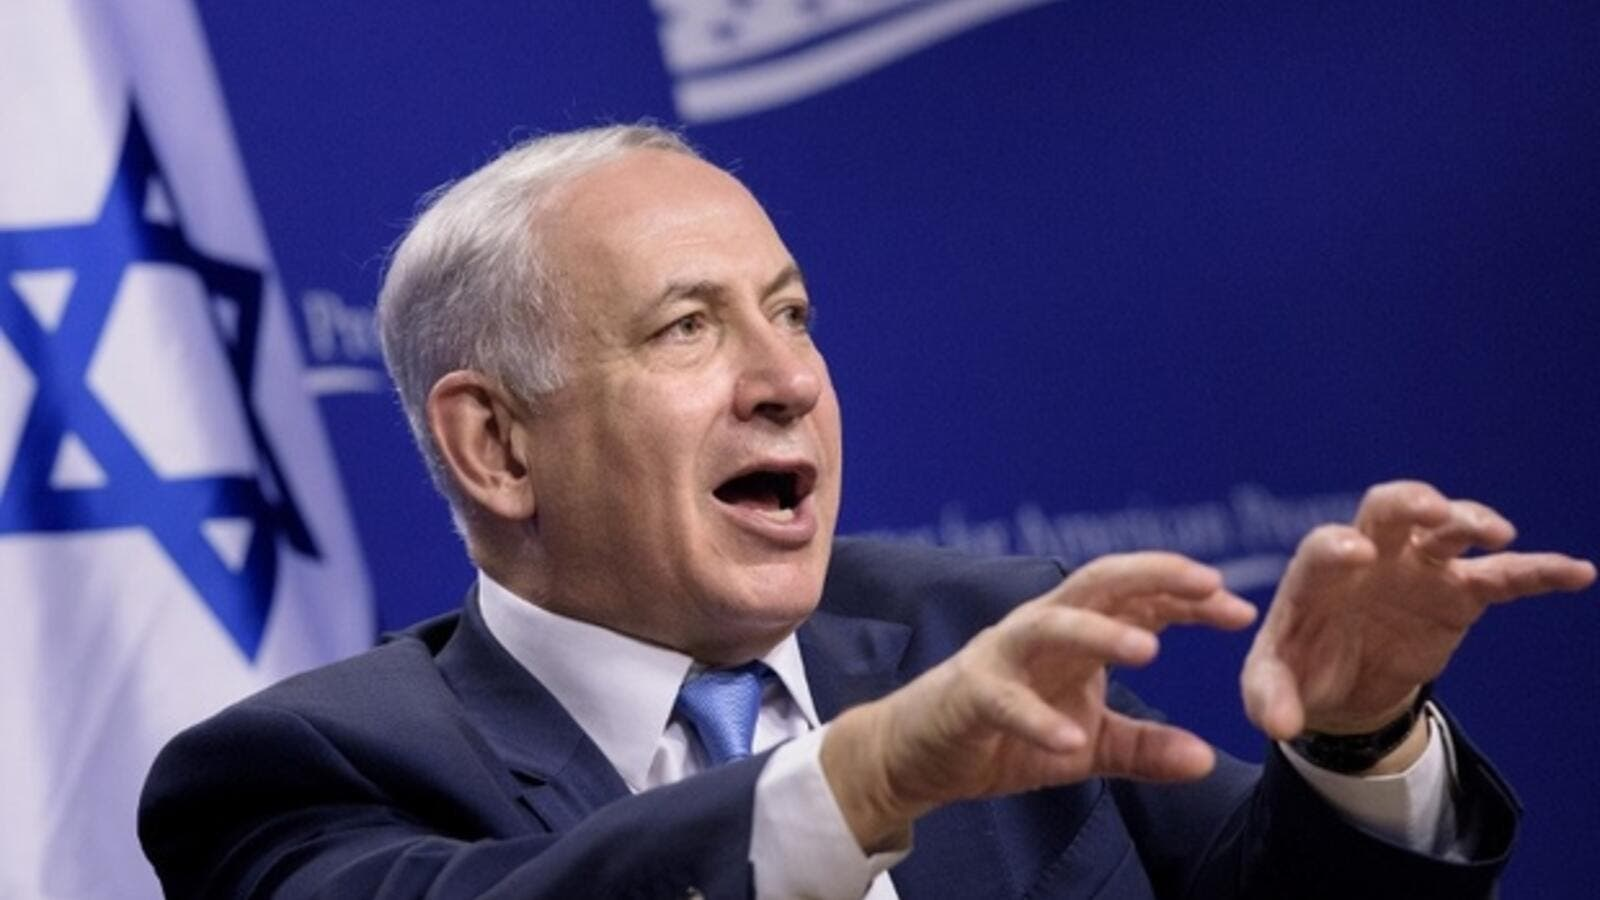 Netanyahu responding to Sweden's top diplomat Margot Wallstrom's who demanded investigations into the killing of Palestinians by Israeli forces in 2016. (AFP/File)